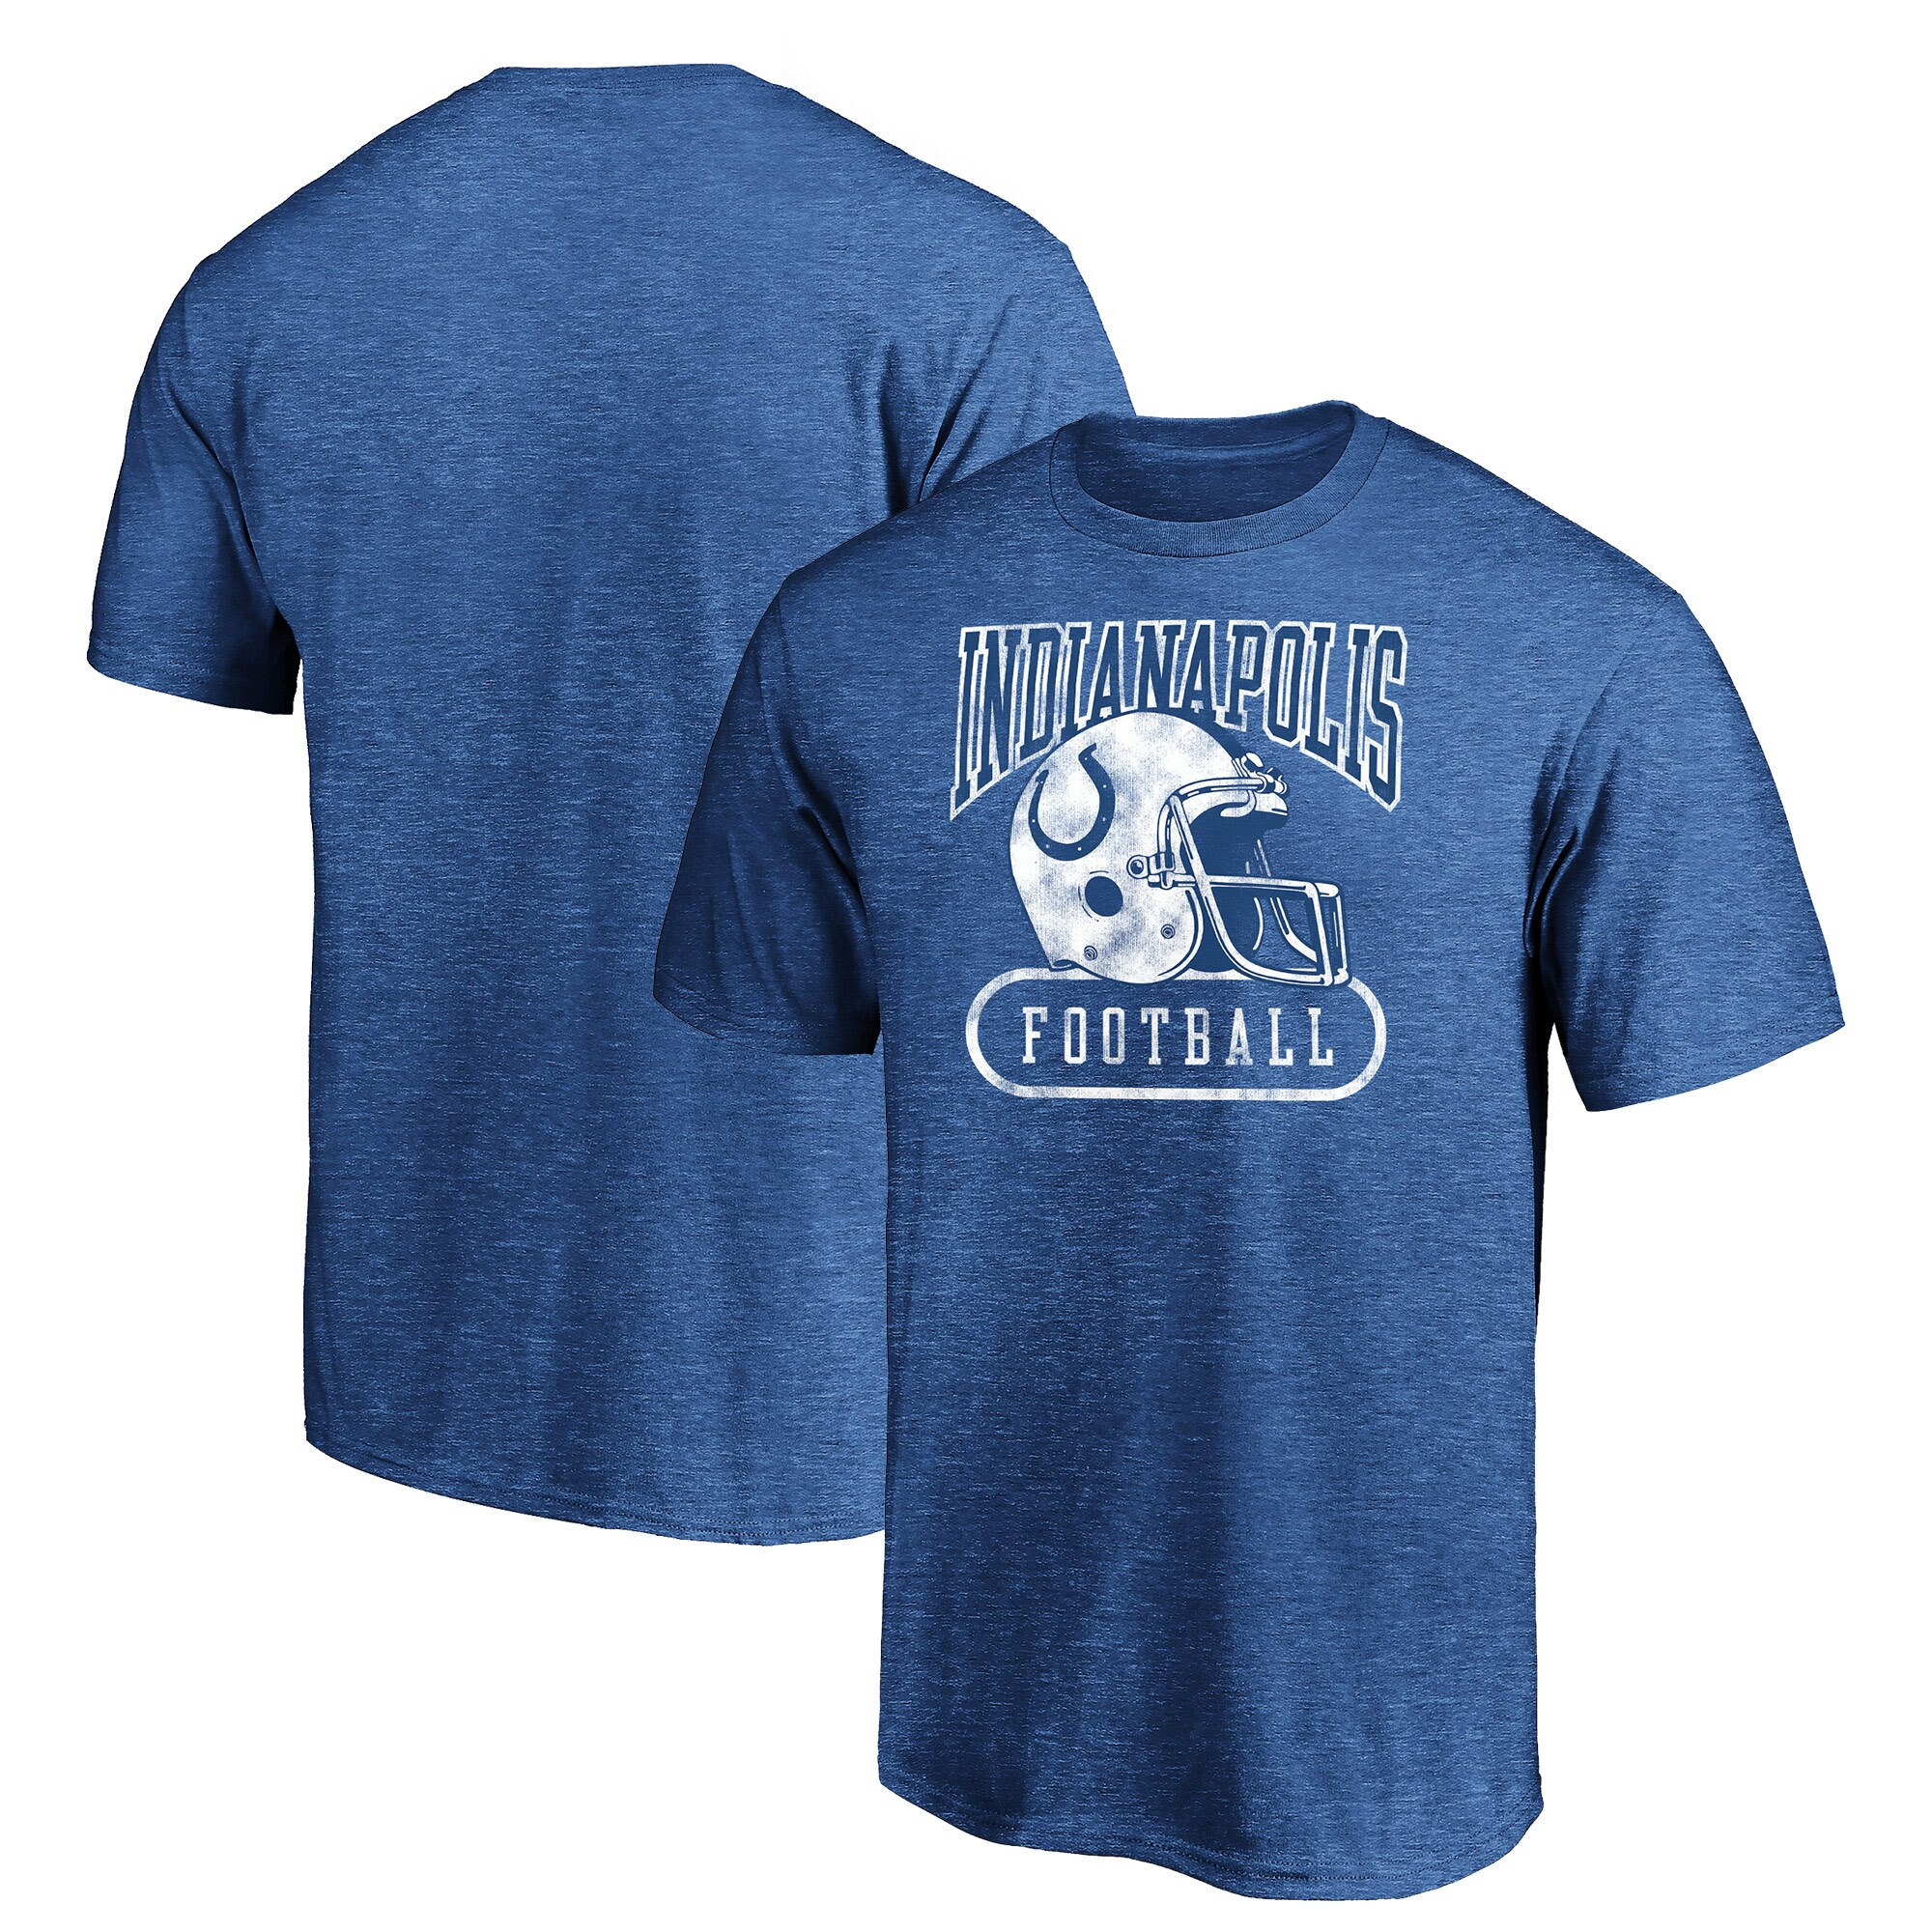 Indianapolis Colts Majestic True Classics Pro Club Throwback Tri-Blend T-Shirt - Royal